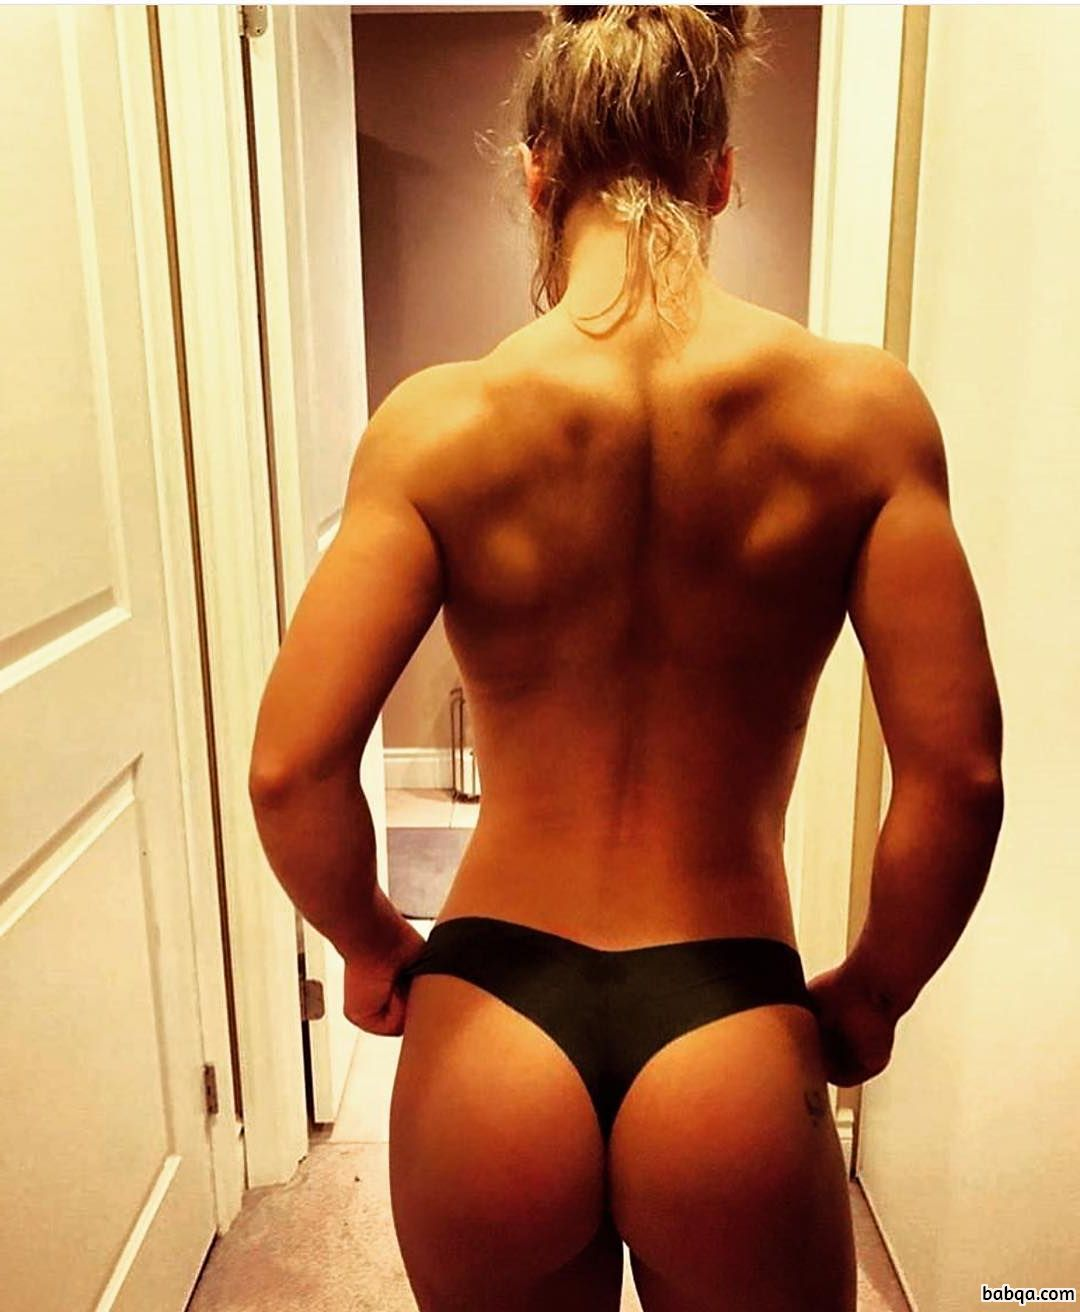 awesome female bodybuilder with strong body and muscle legs picture from insta